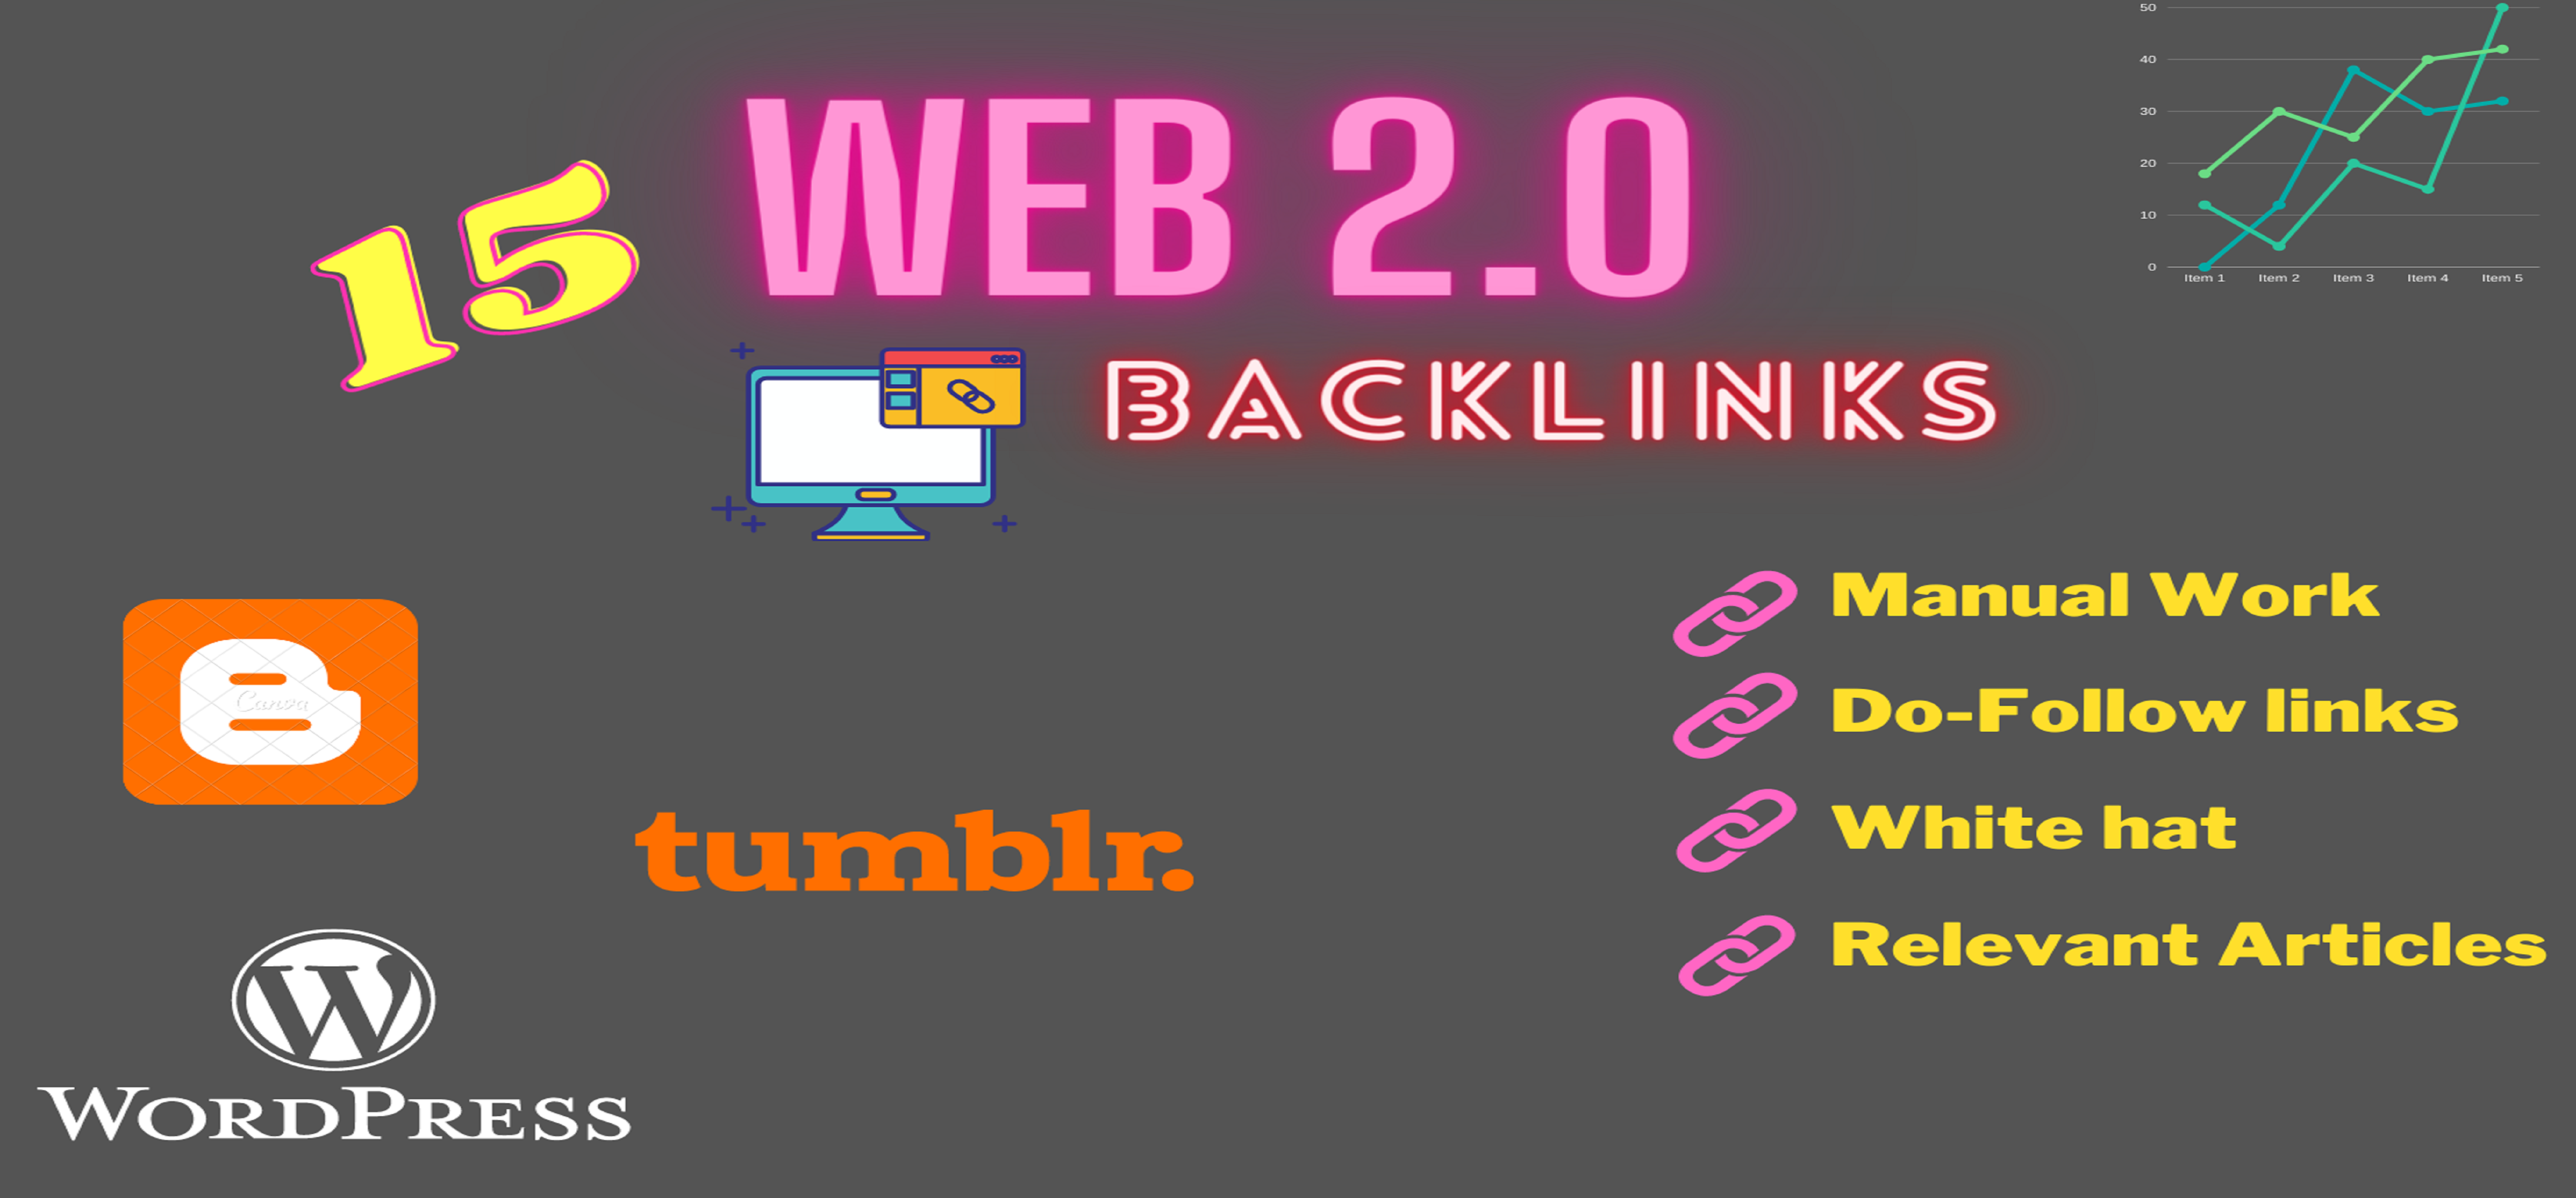 15 Web 2.0 Do-Follow Backlinks that Boost Your Site